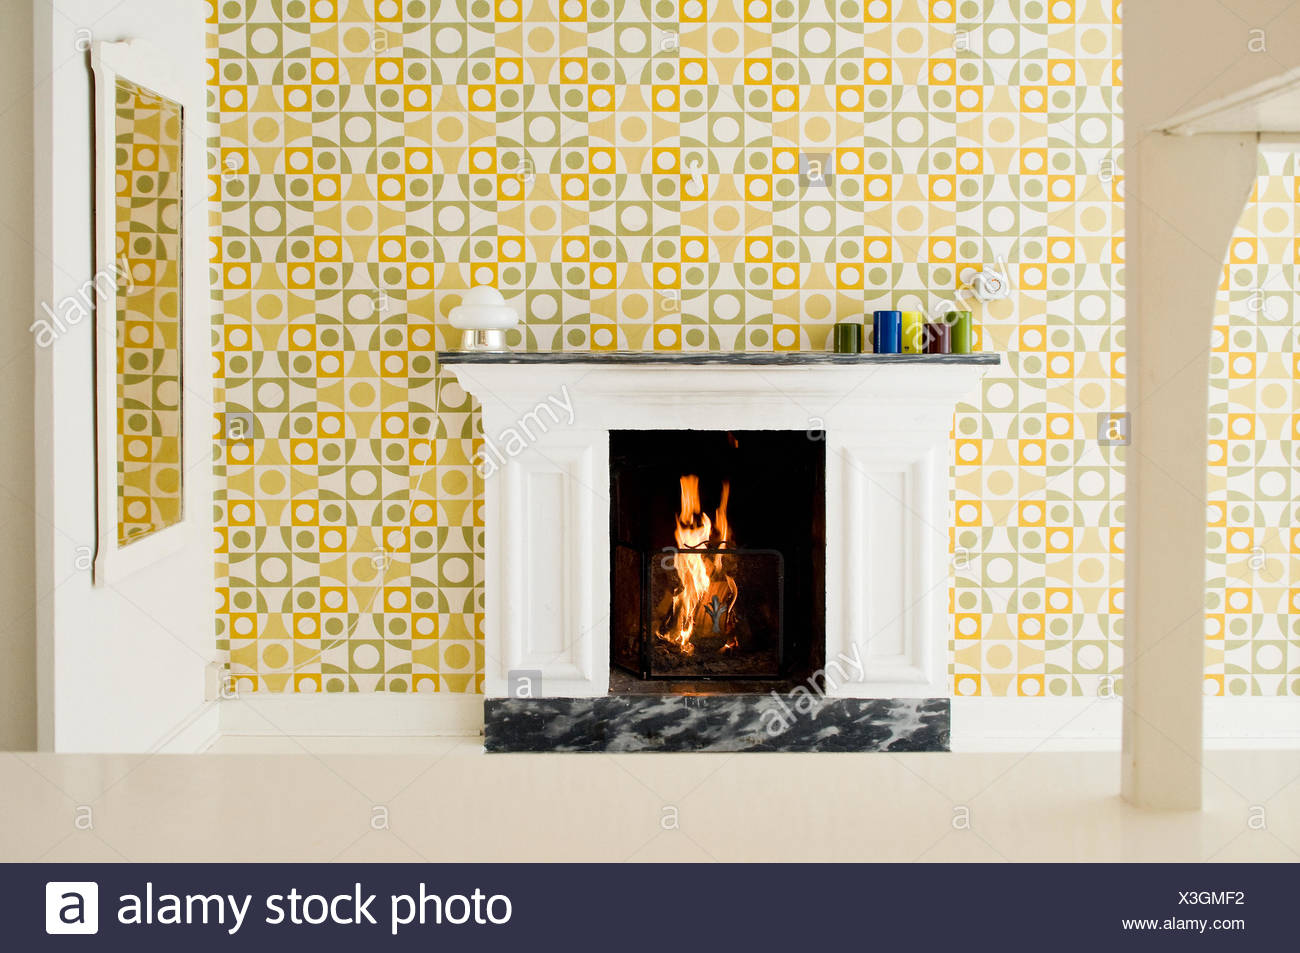 Home interior with fire place - Stock Image